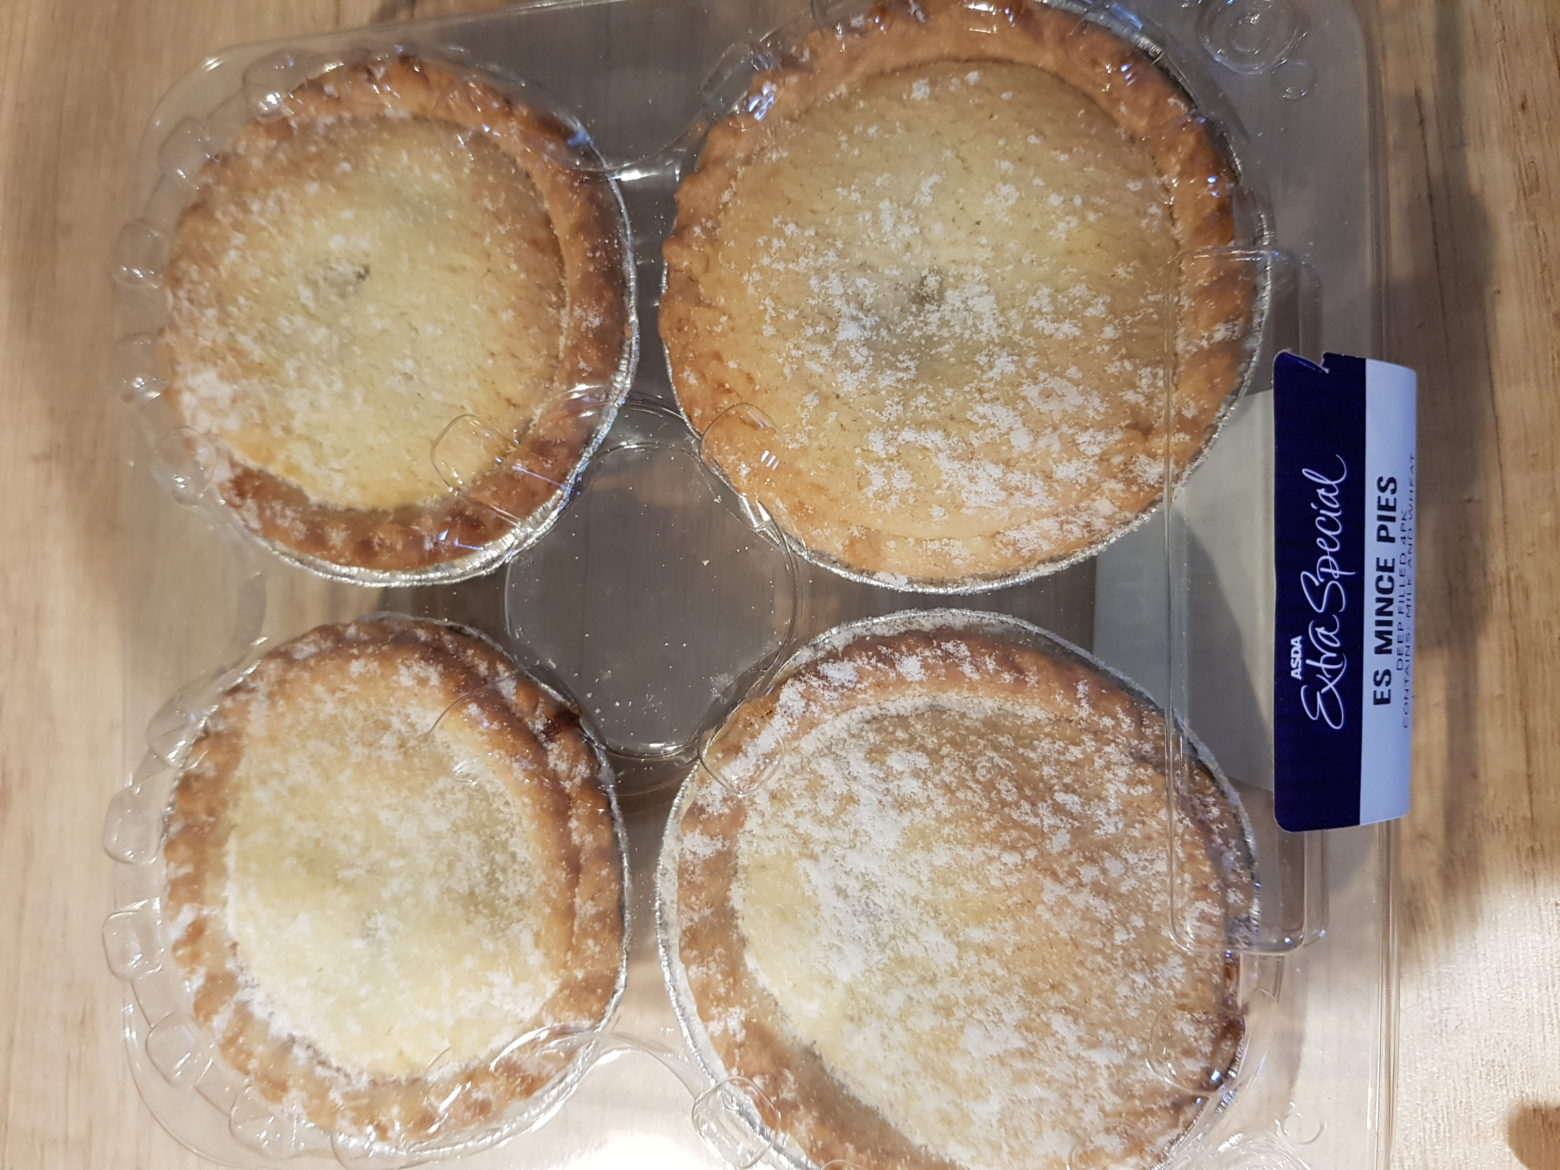 ASDA Extra Special Deep Filled Mince Pie Review 2019